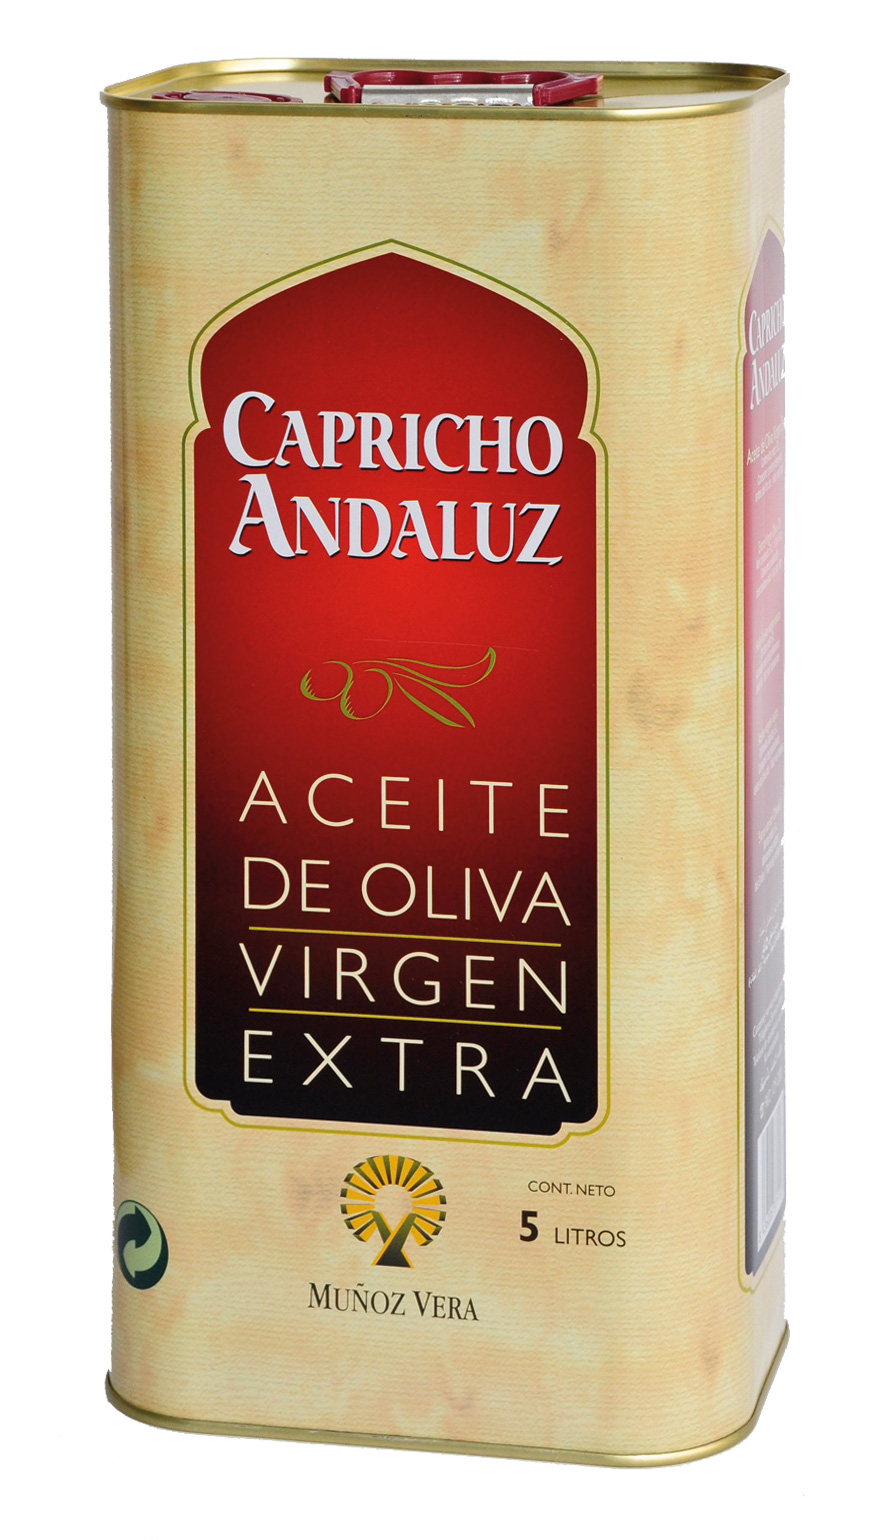 Branding y Packaging aceites Capricho Andaluz